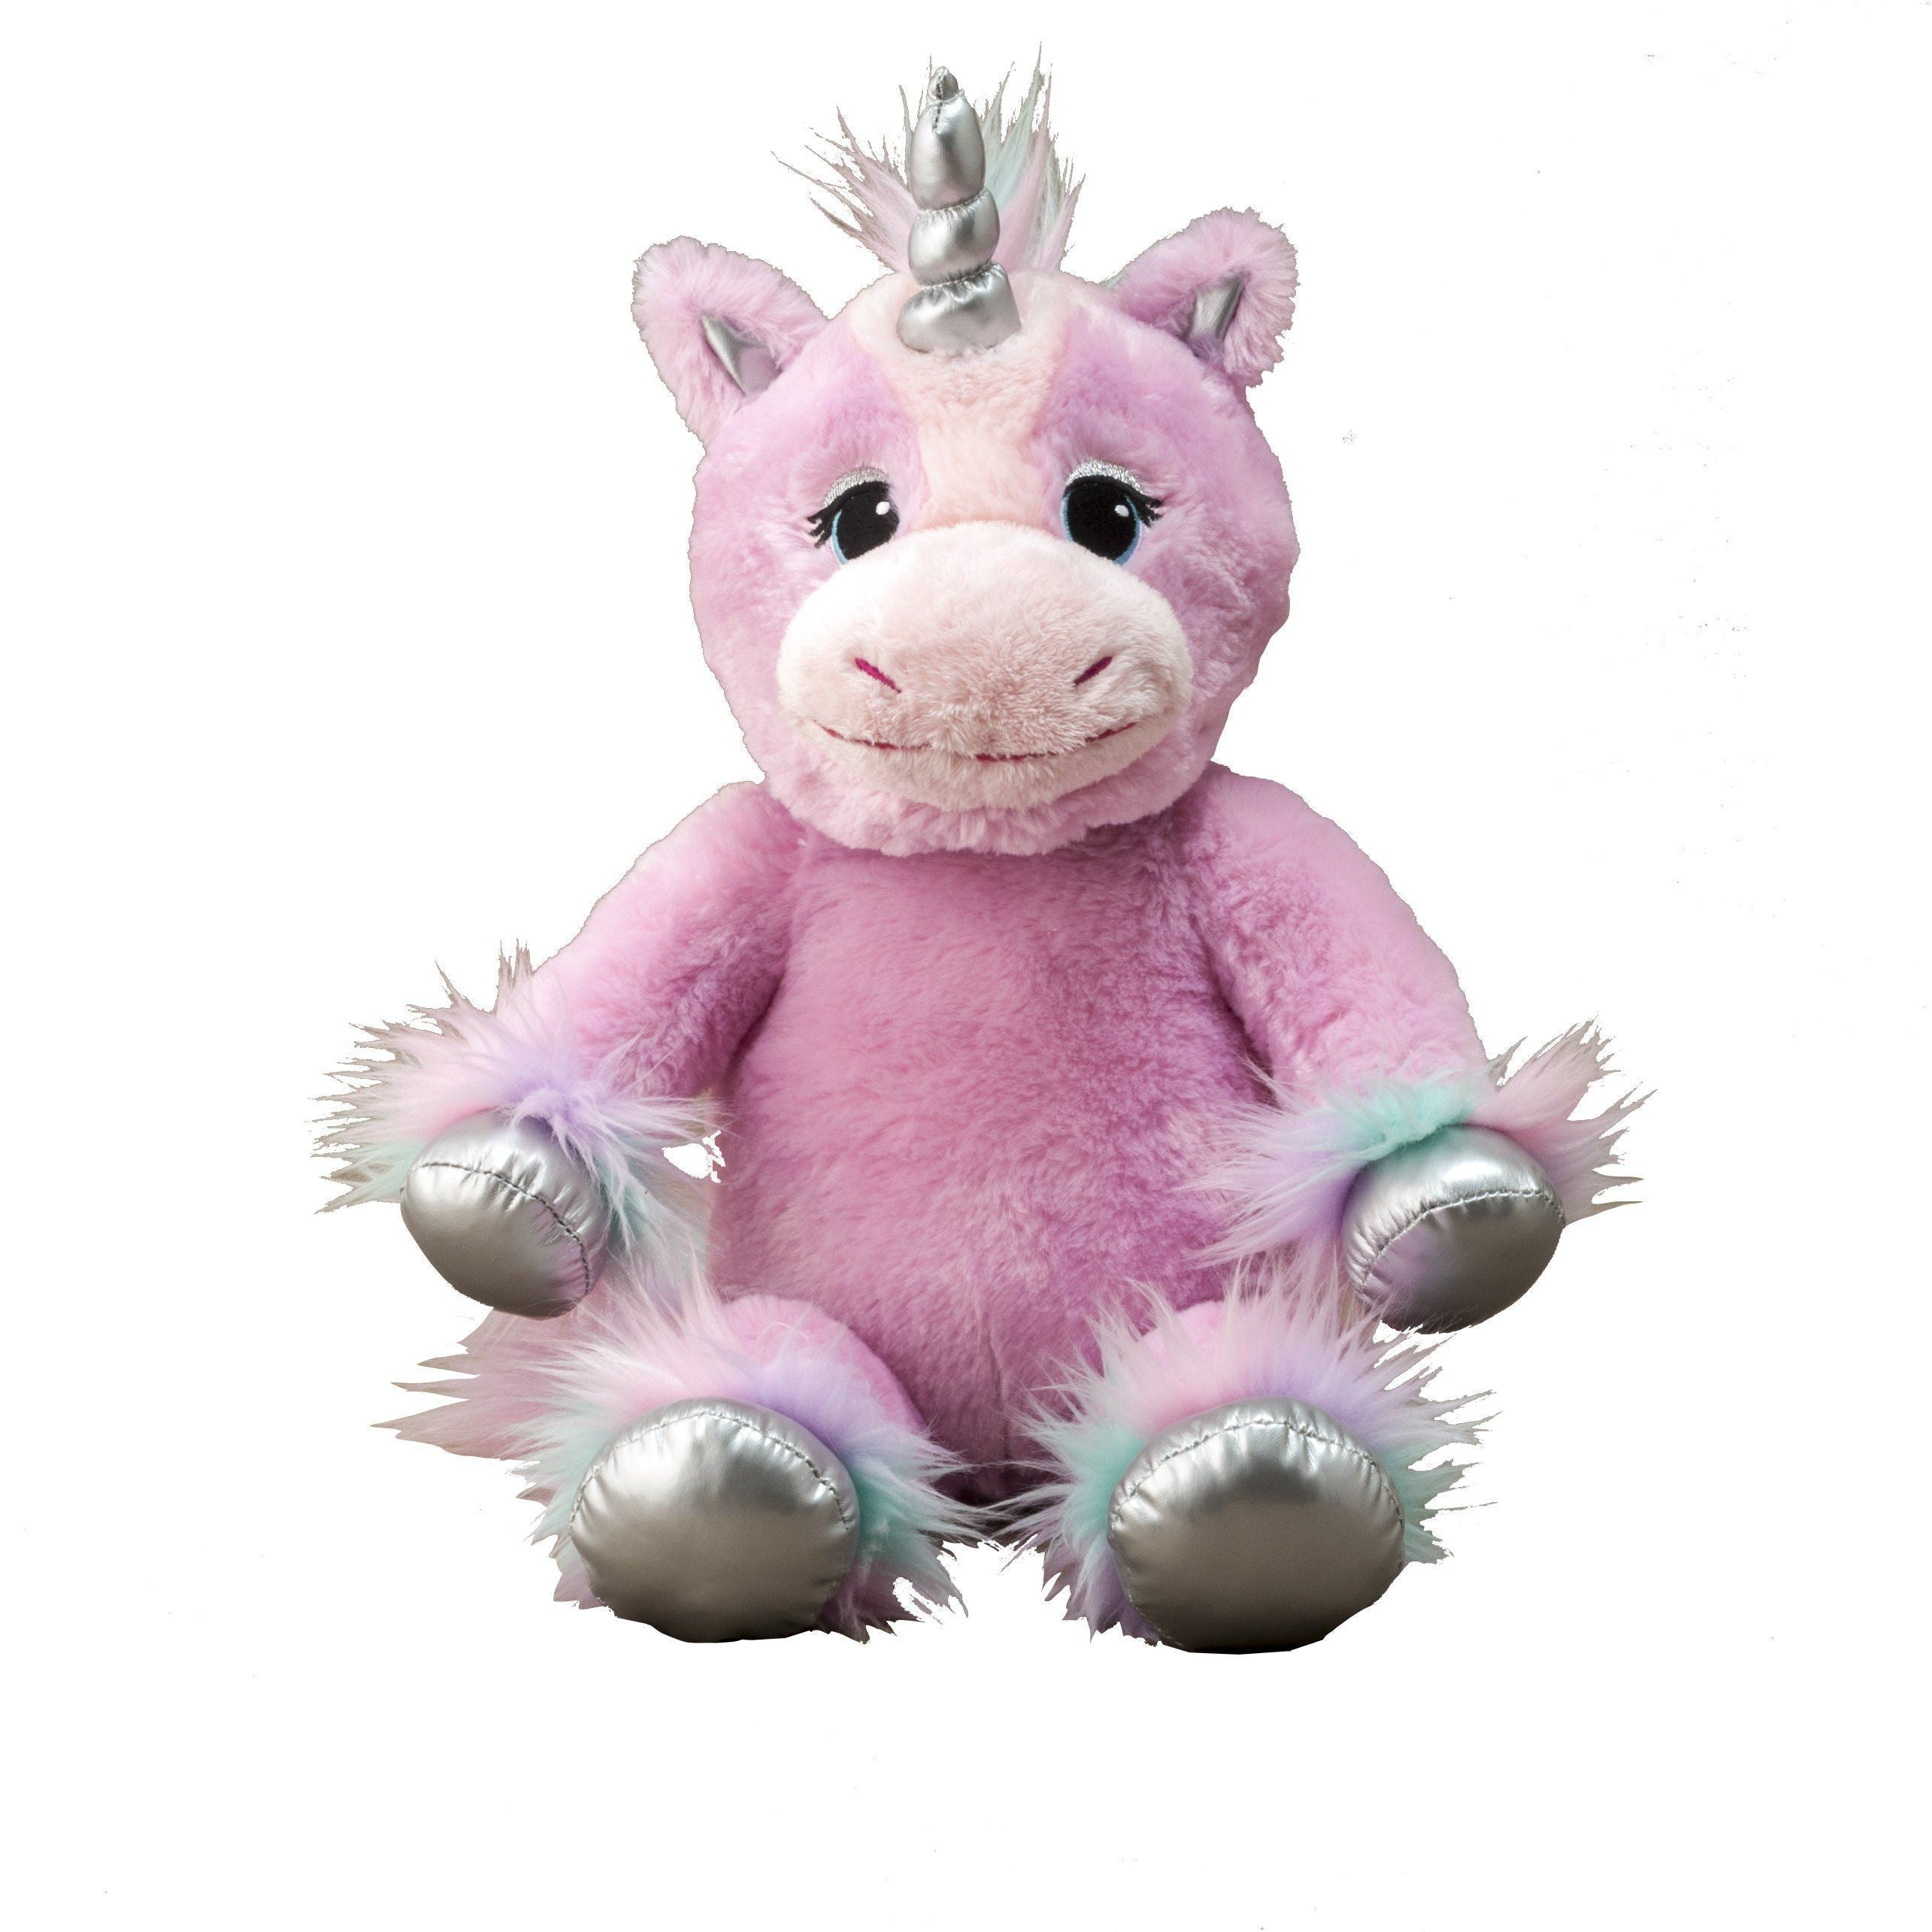 Flipemz Horse to Unicorn Plush Toy